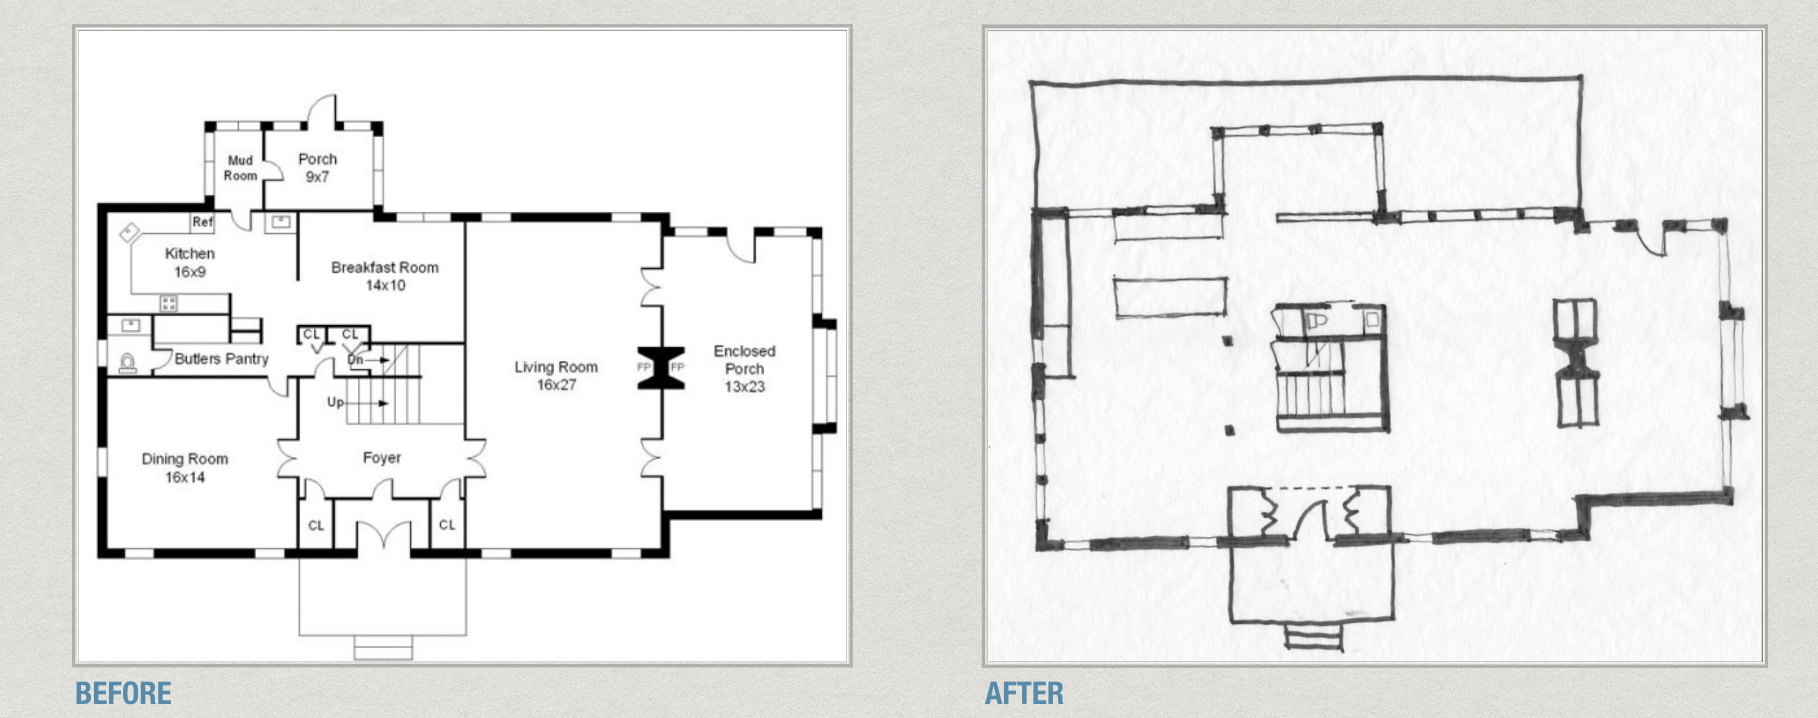 In This Original Plan And Sketch Of A Typical Center Hall Colonial Plan, I  Show A Quick Concept Of How This Idea Can Be Achieved